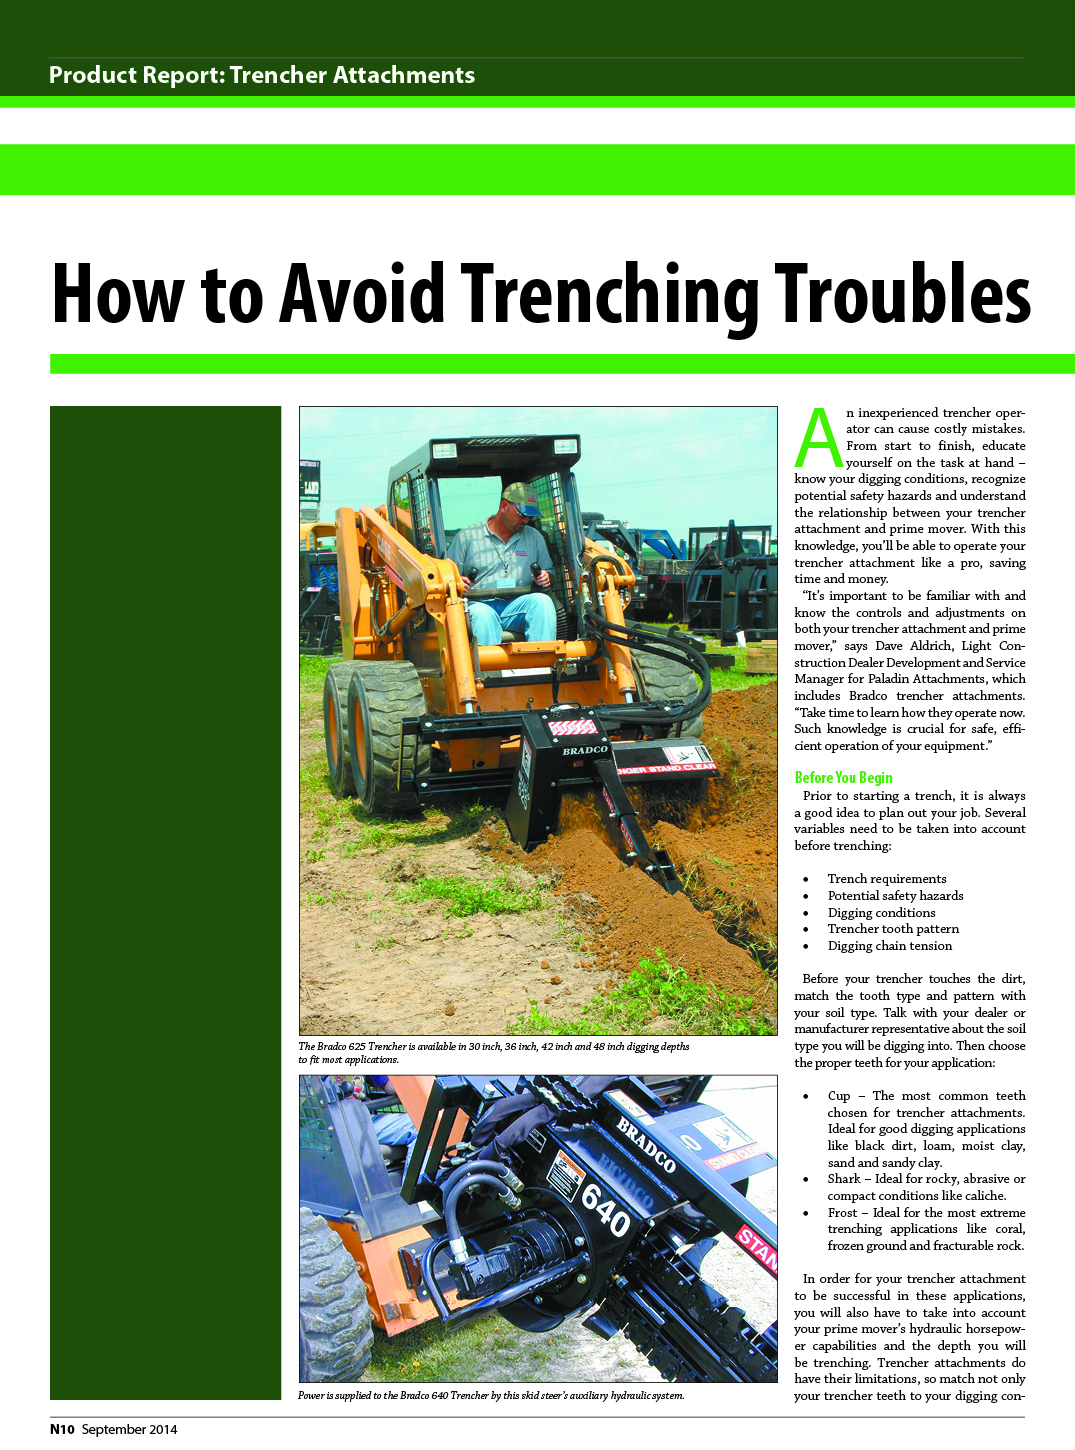 How to Avoid Trenching Troubles1